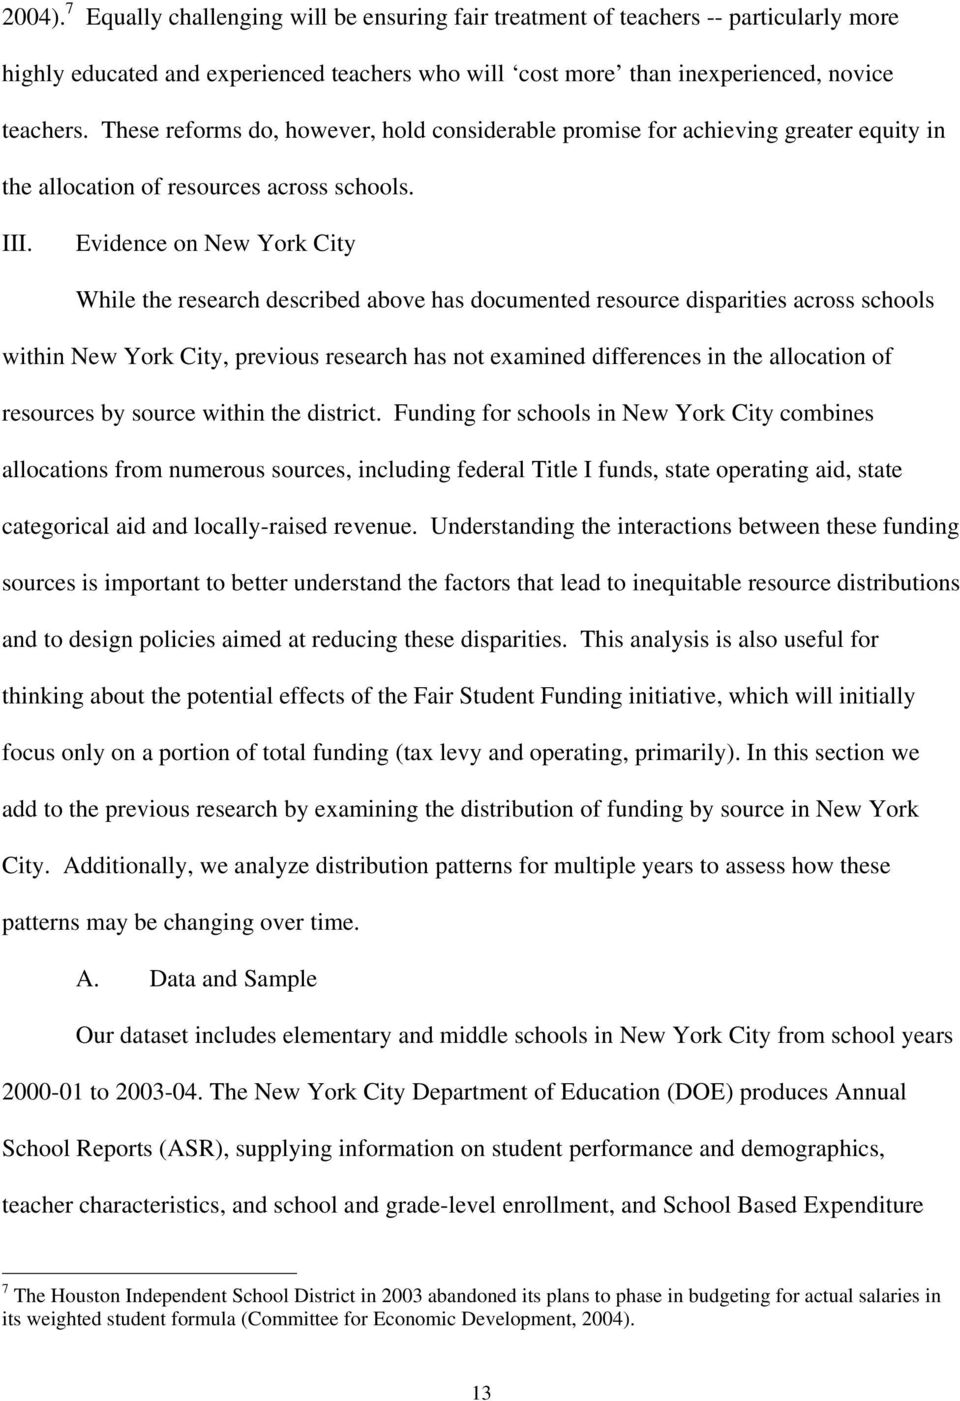 Evidence on New York City While the research described above has documented resource disparities across schools within New York City, previous research has not examined differences in the allocation